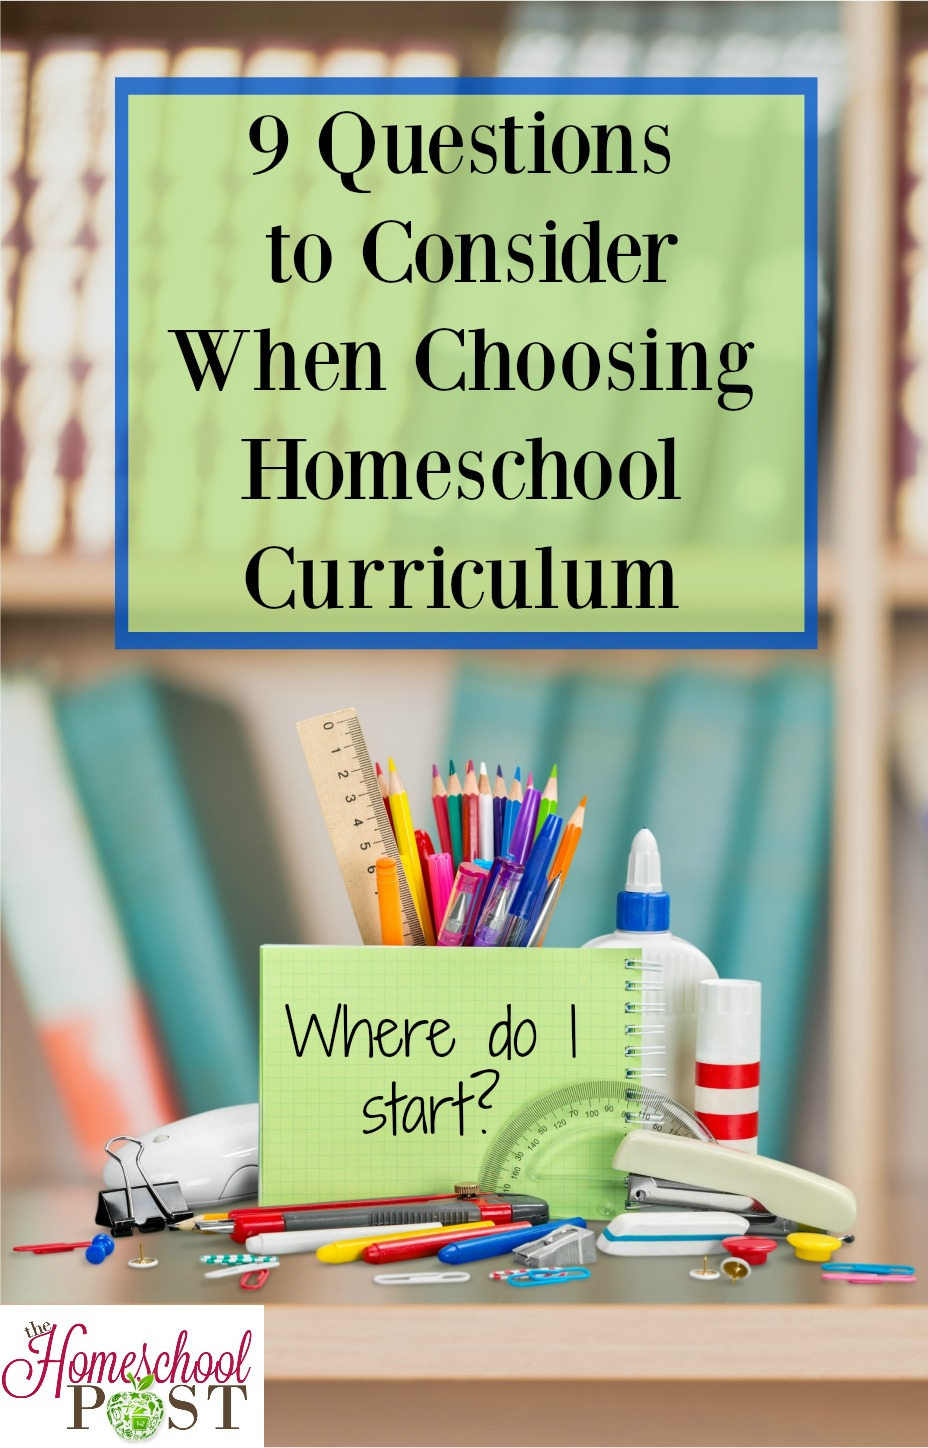 Are you new to homeschooling? Need to change up what you're doing in your homeschool right now? Consider these 9 essential questions to help you make the best choice for your homeschool curriculum. hsbapost.com